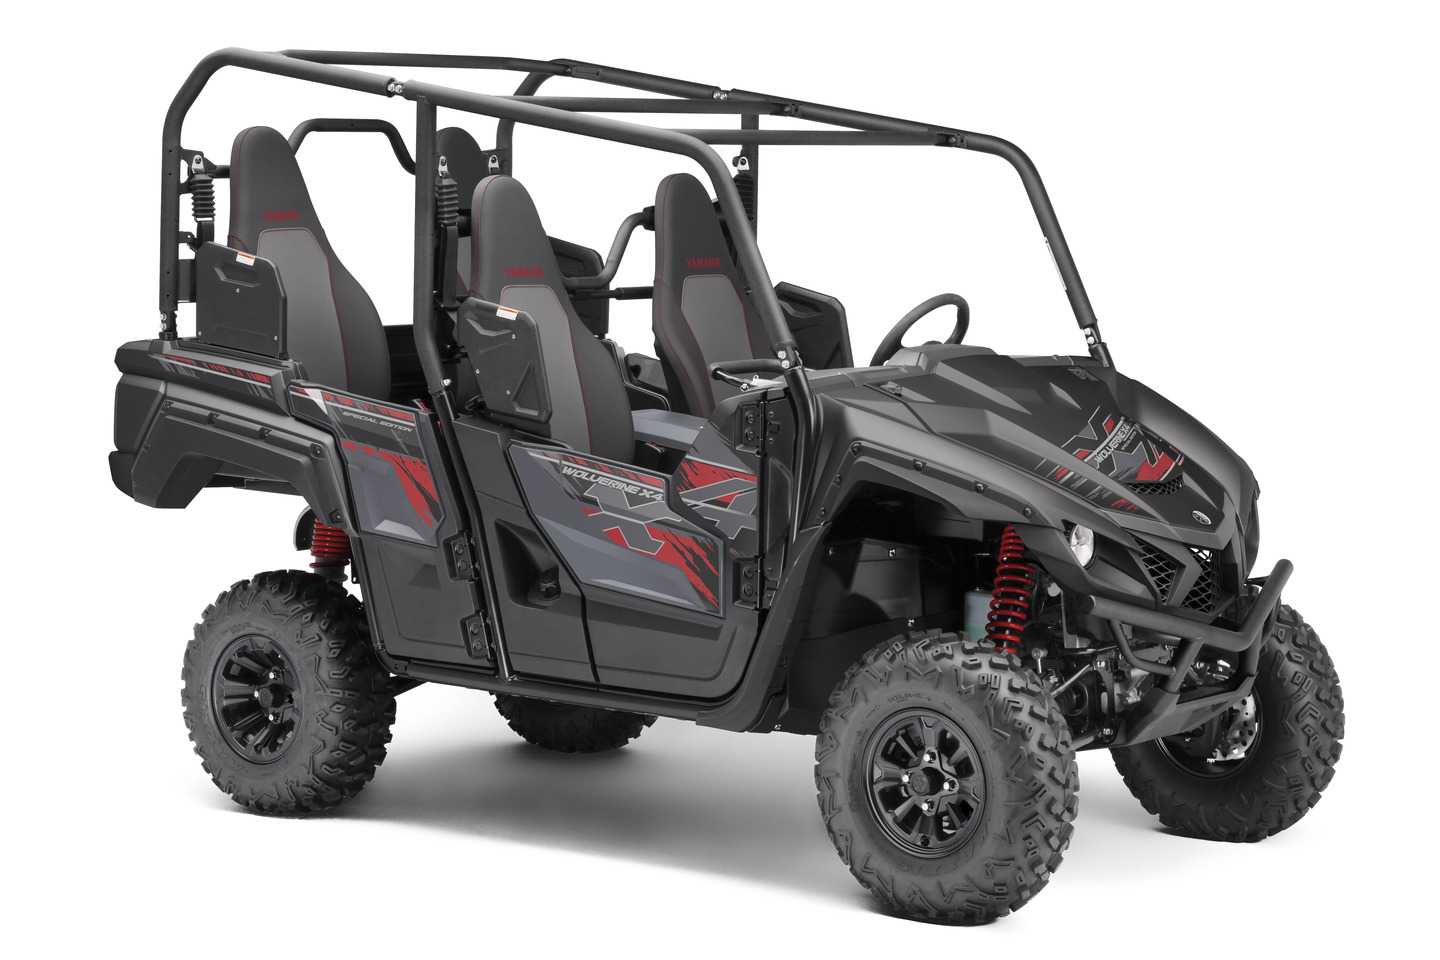 2019 Yamaha Wolverine X4 SE in Tactical Black